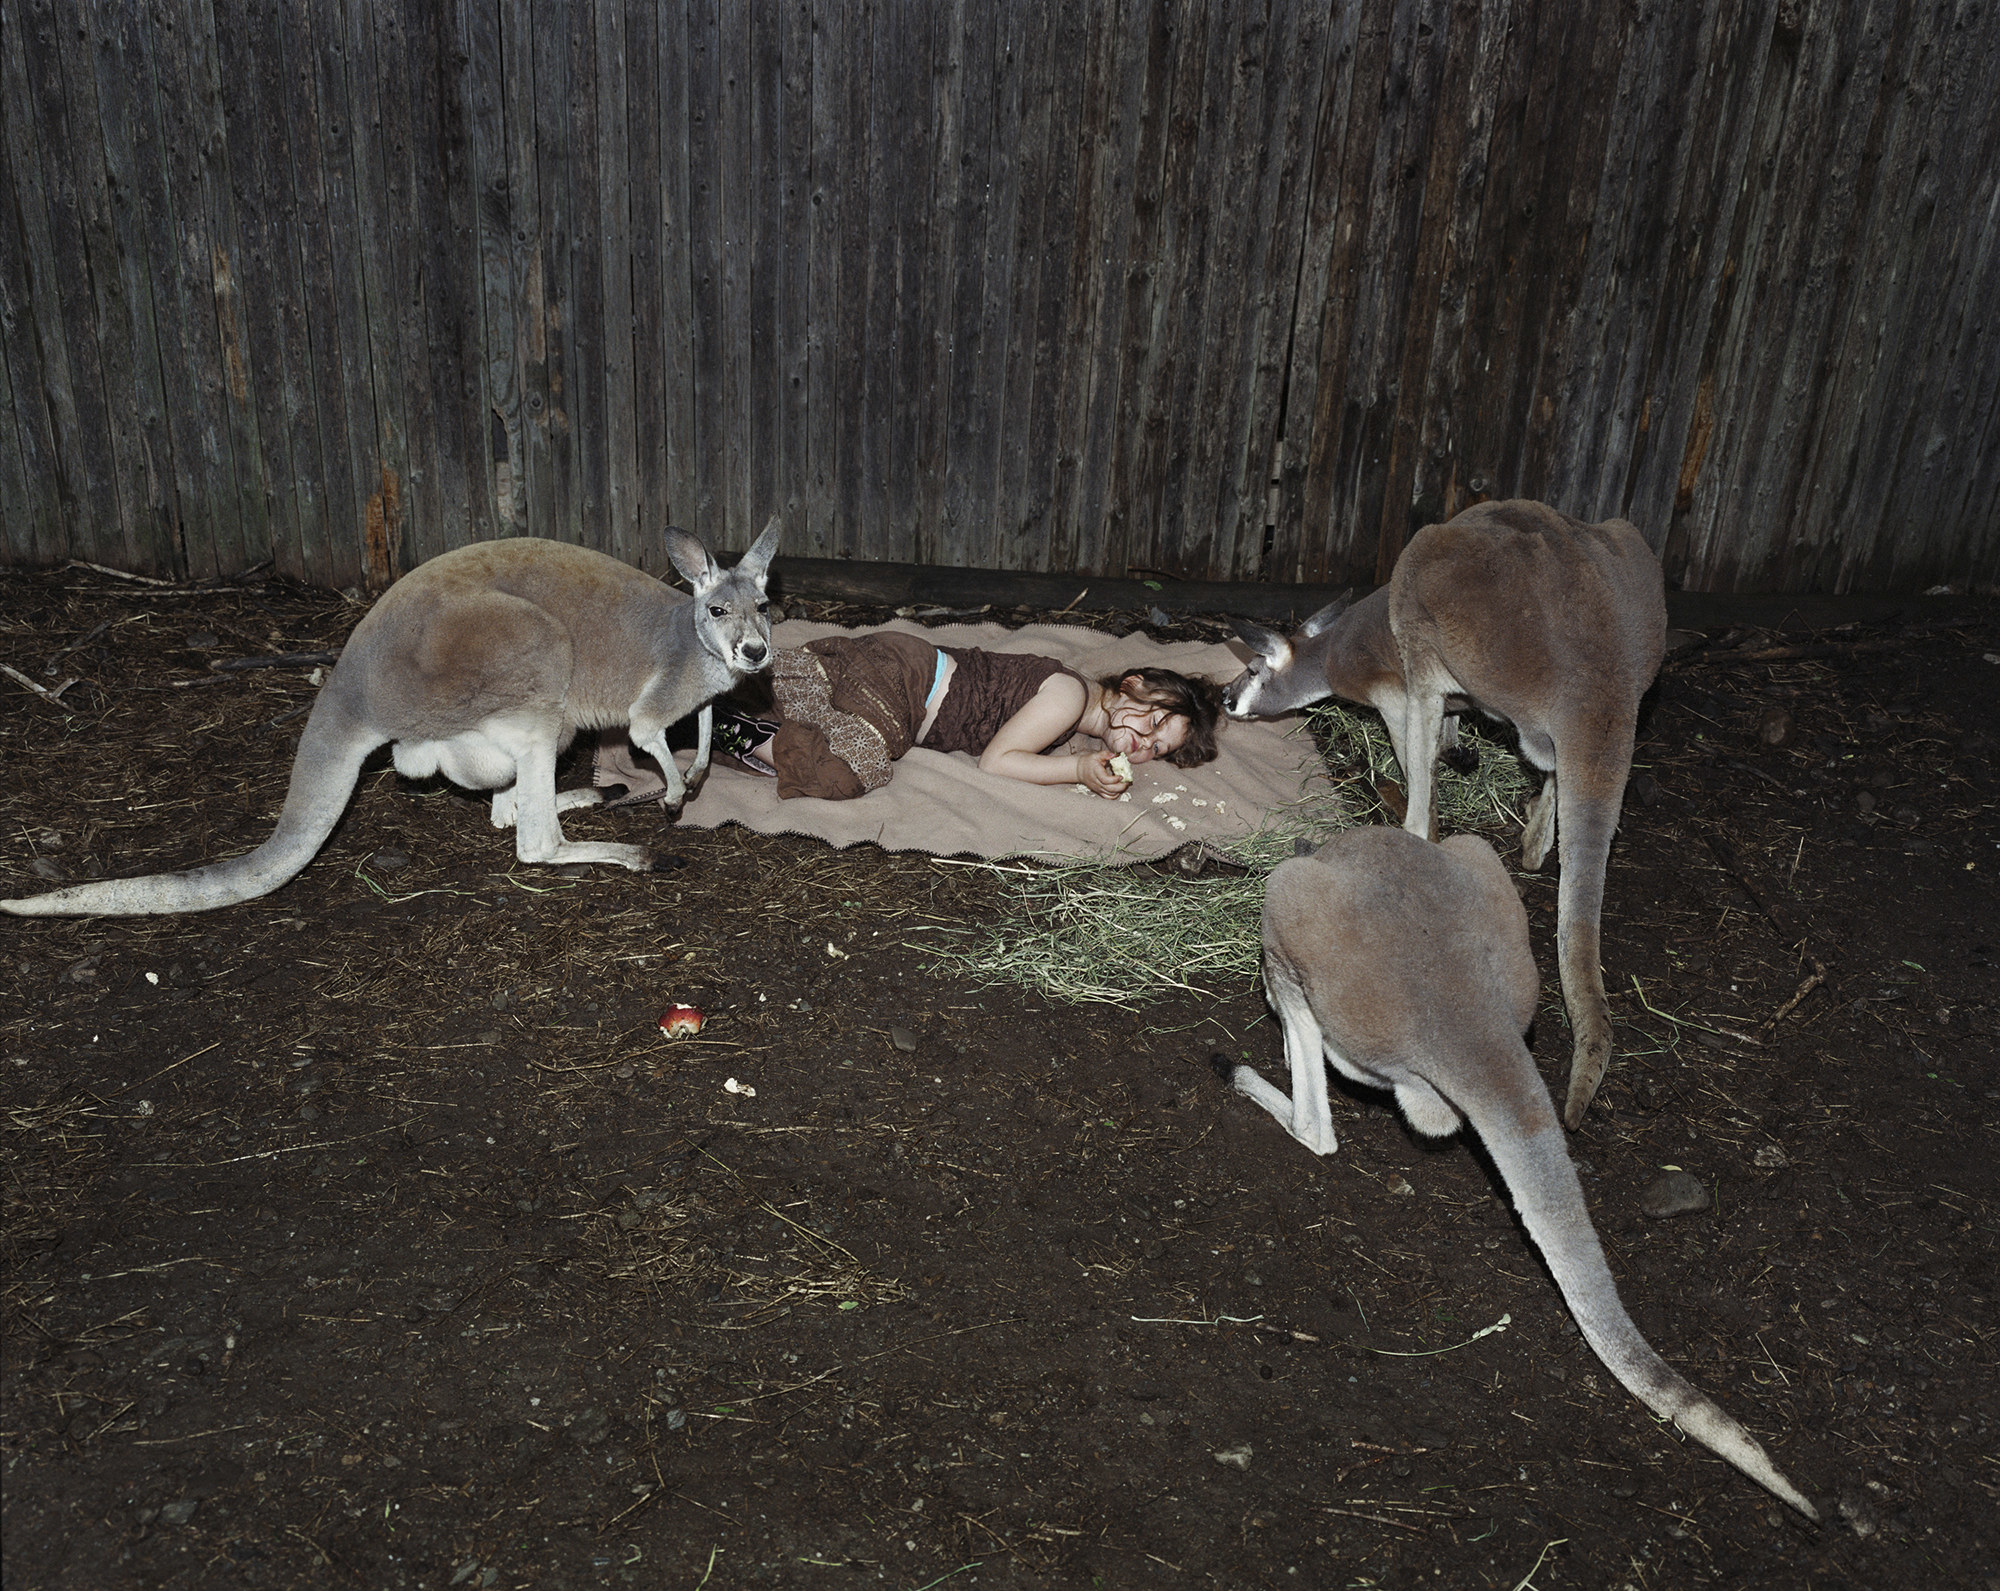 Three kangaroos stand around a blanket where a young girl is lying down